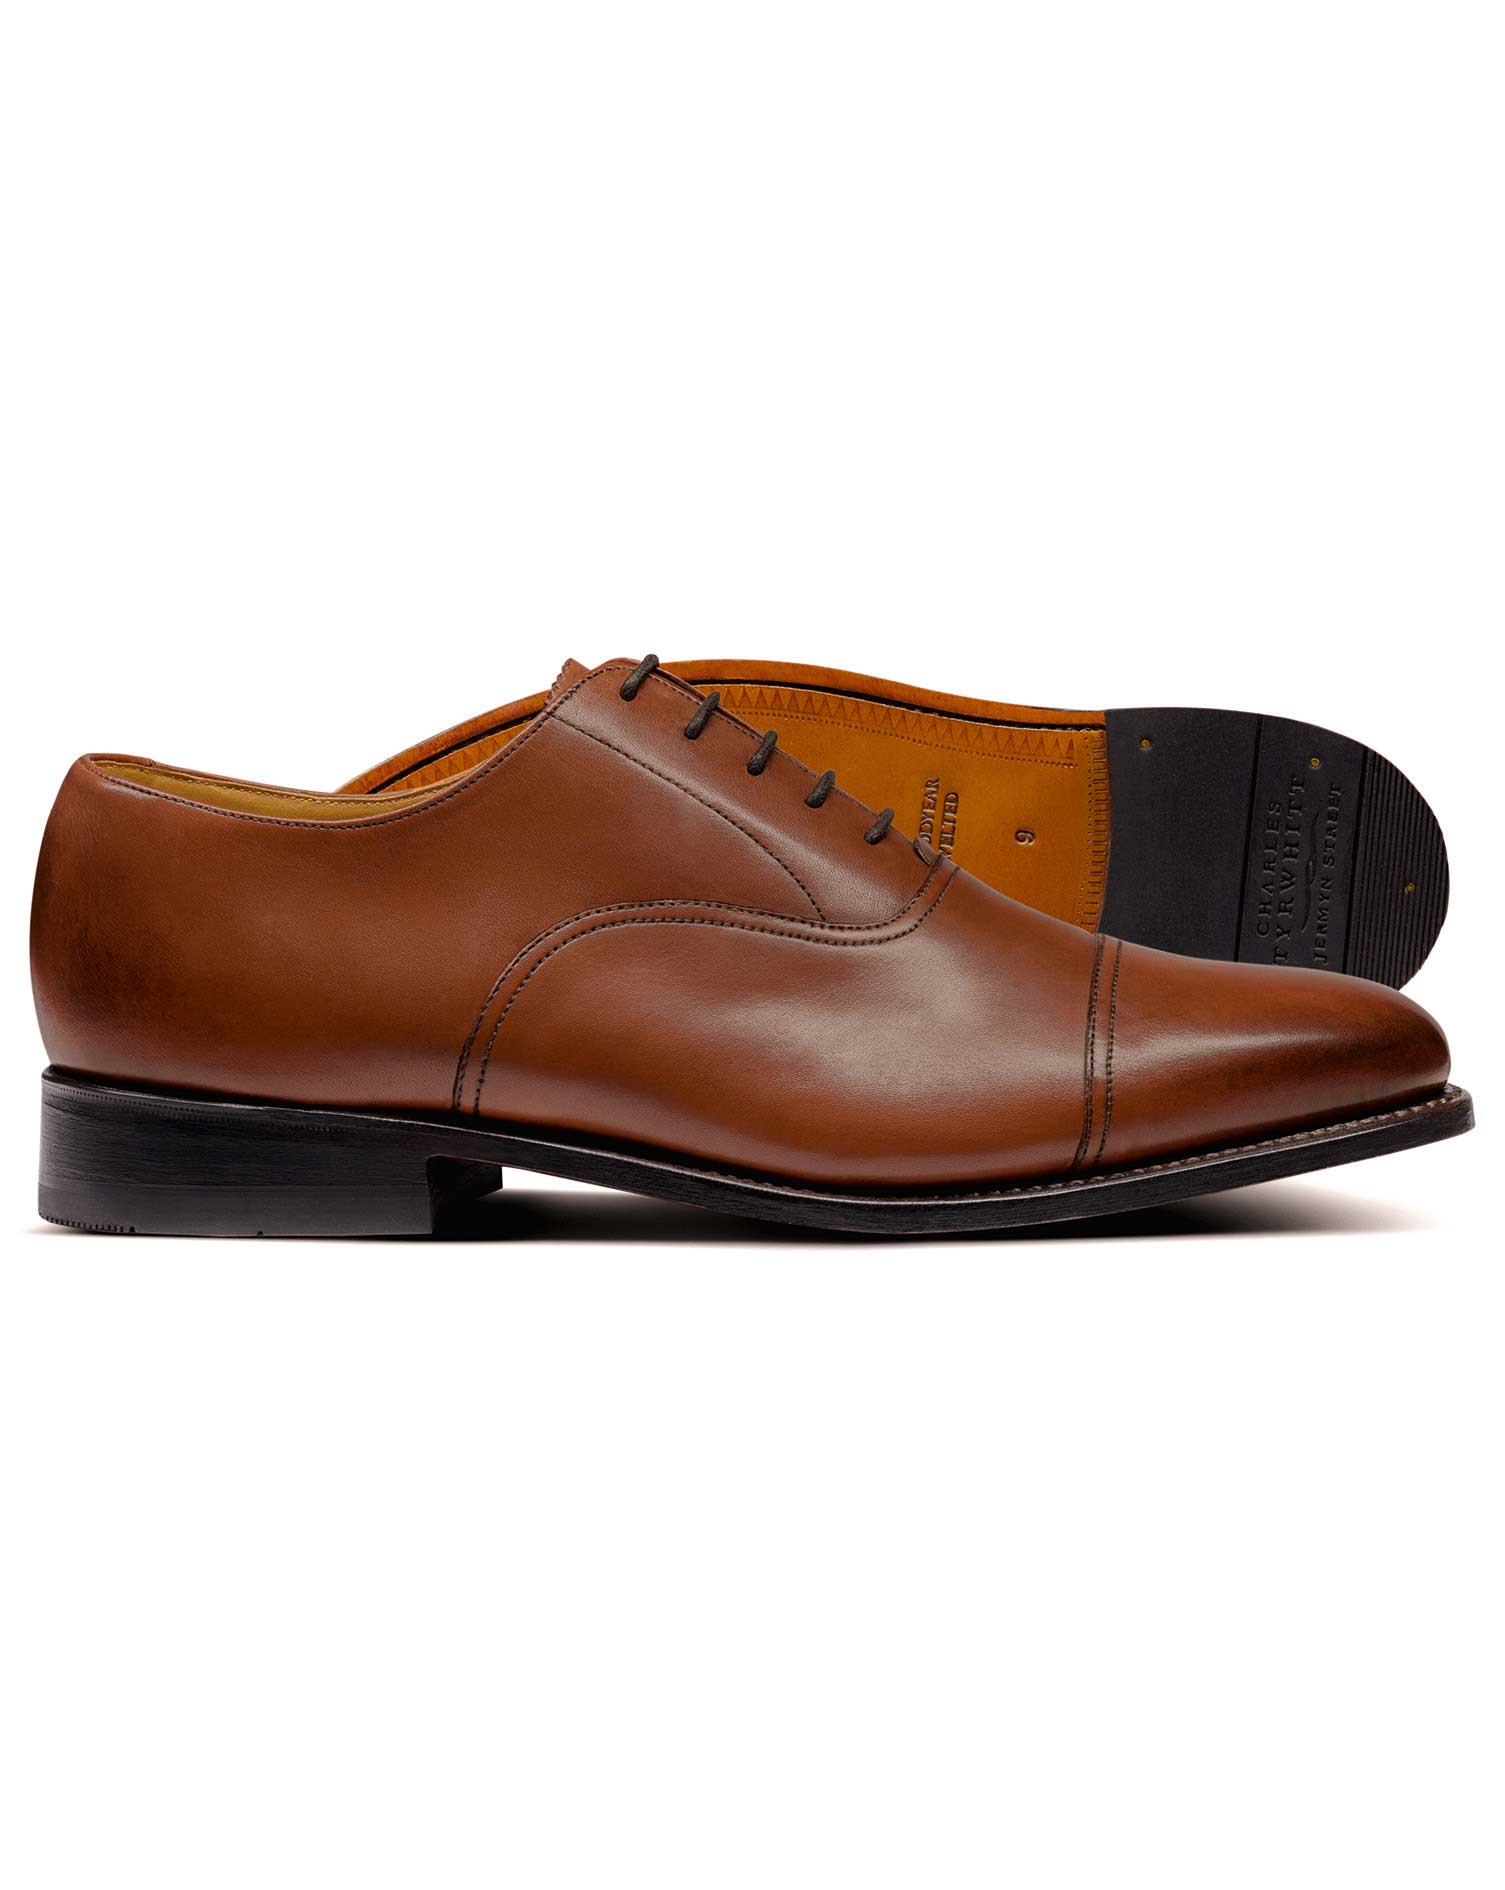 Tan Goodyear Welted Oxford Toe Cap Shoes Size 7.5 R by Charles Tyrwhitt